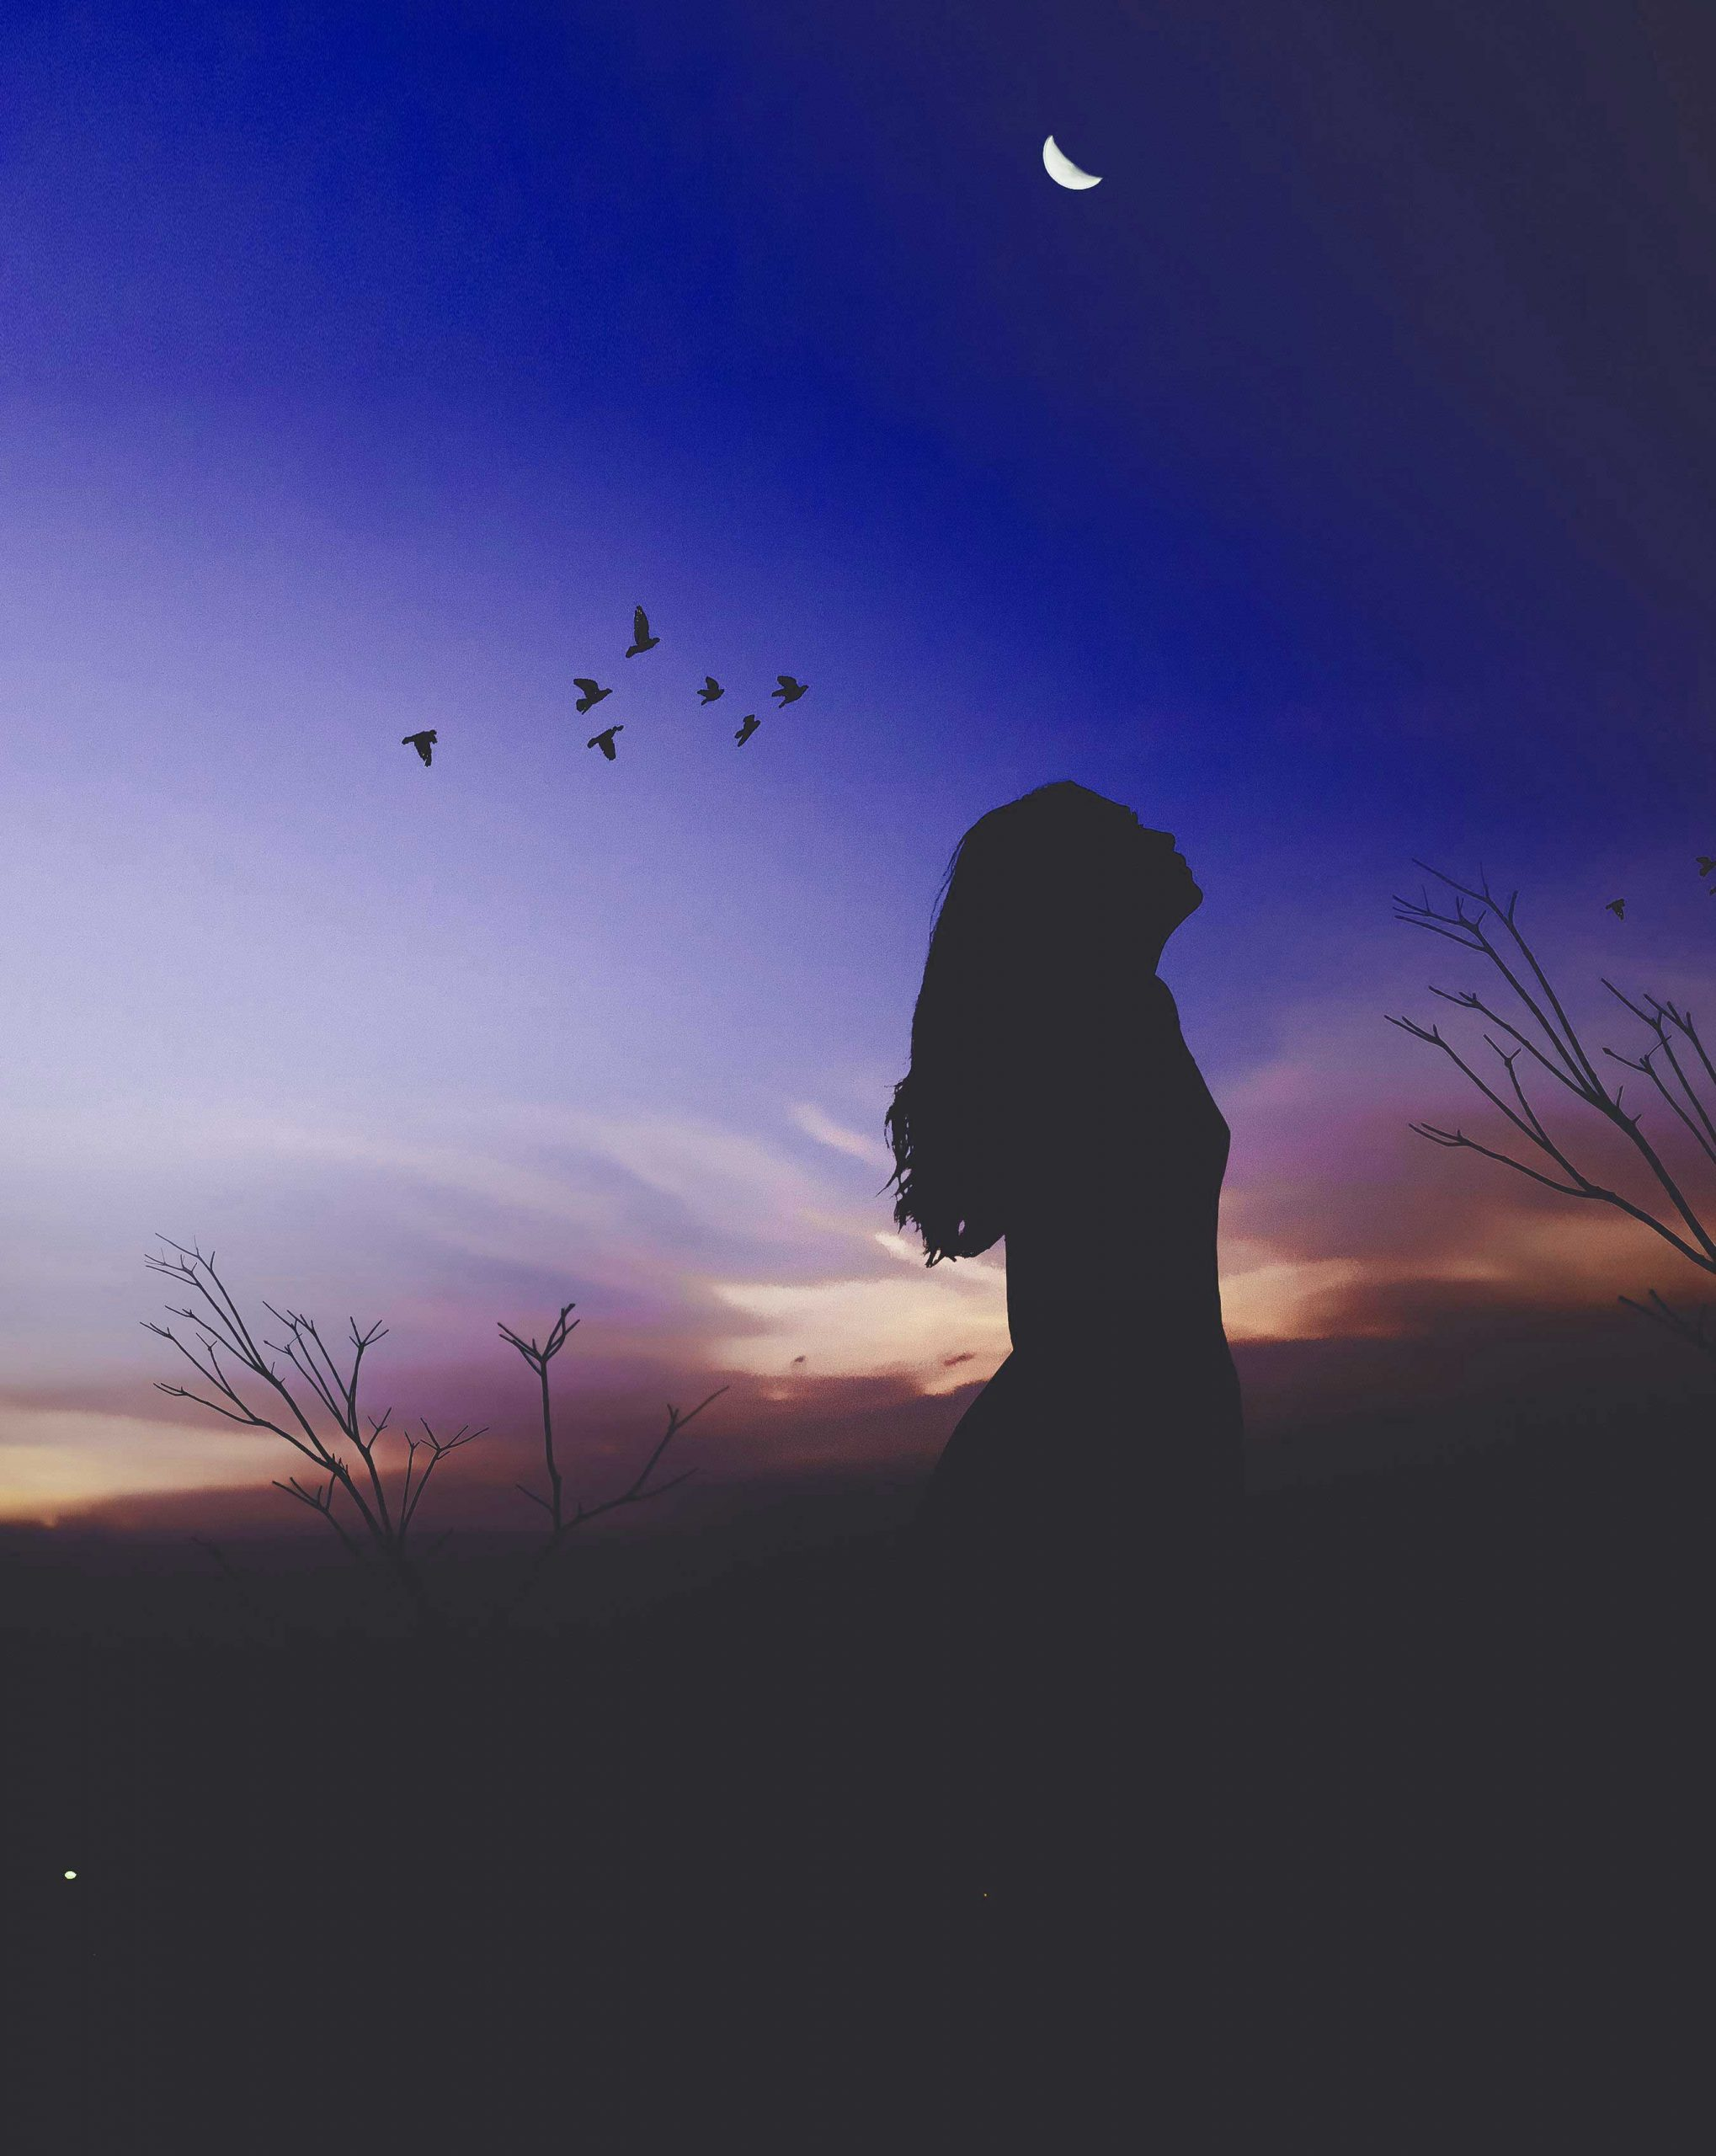 Alone Whatsapp DP Free Images